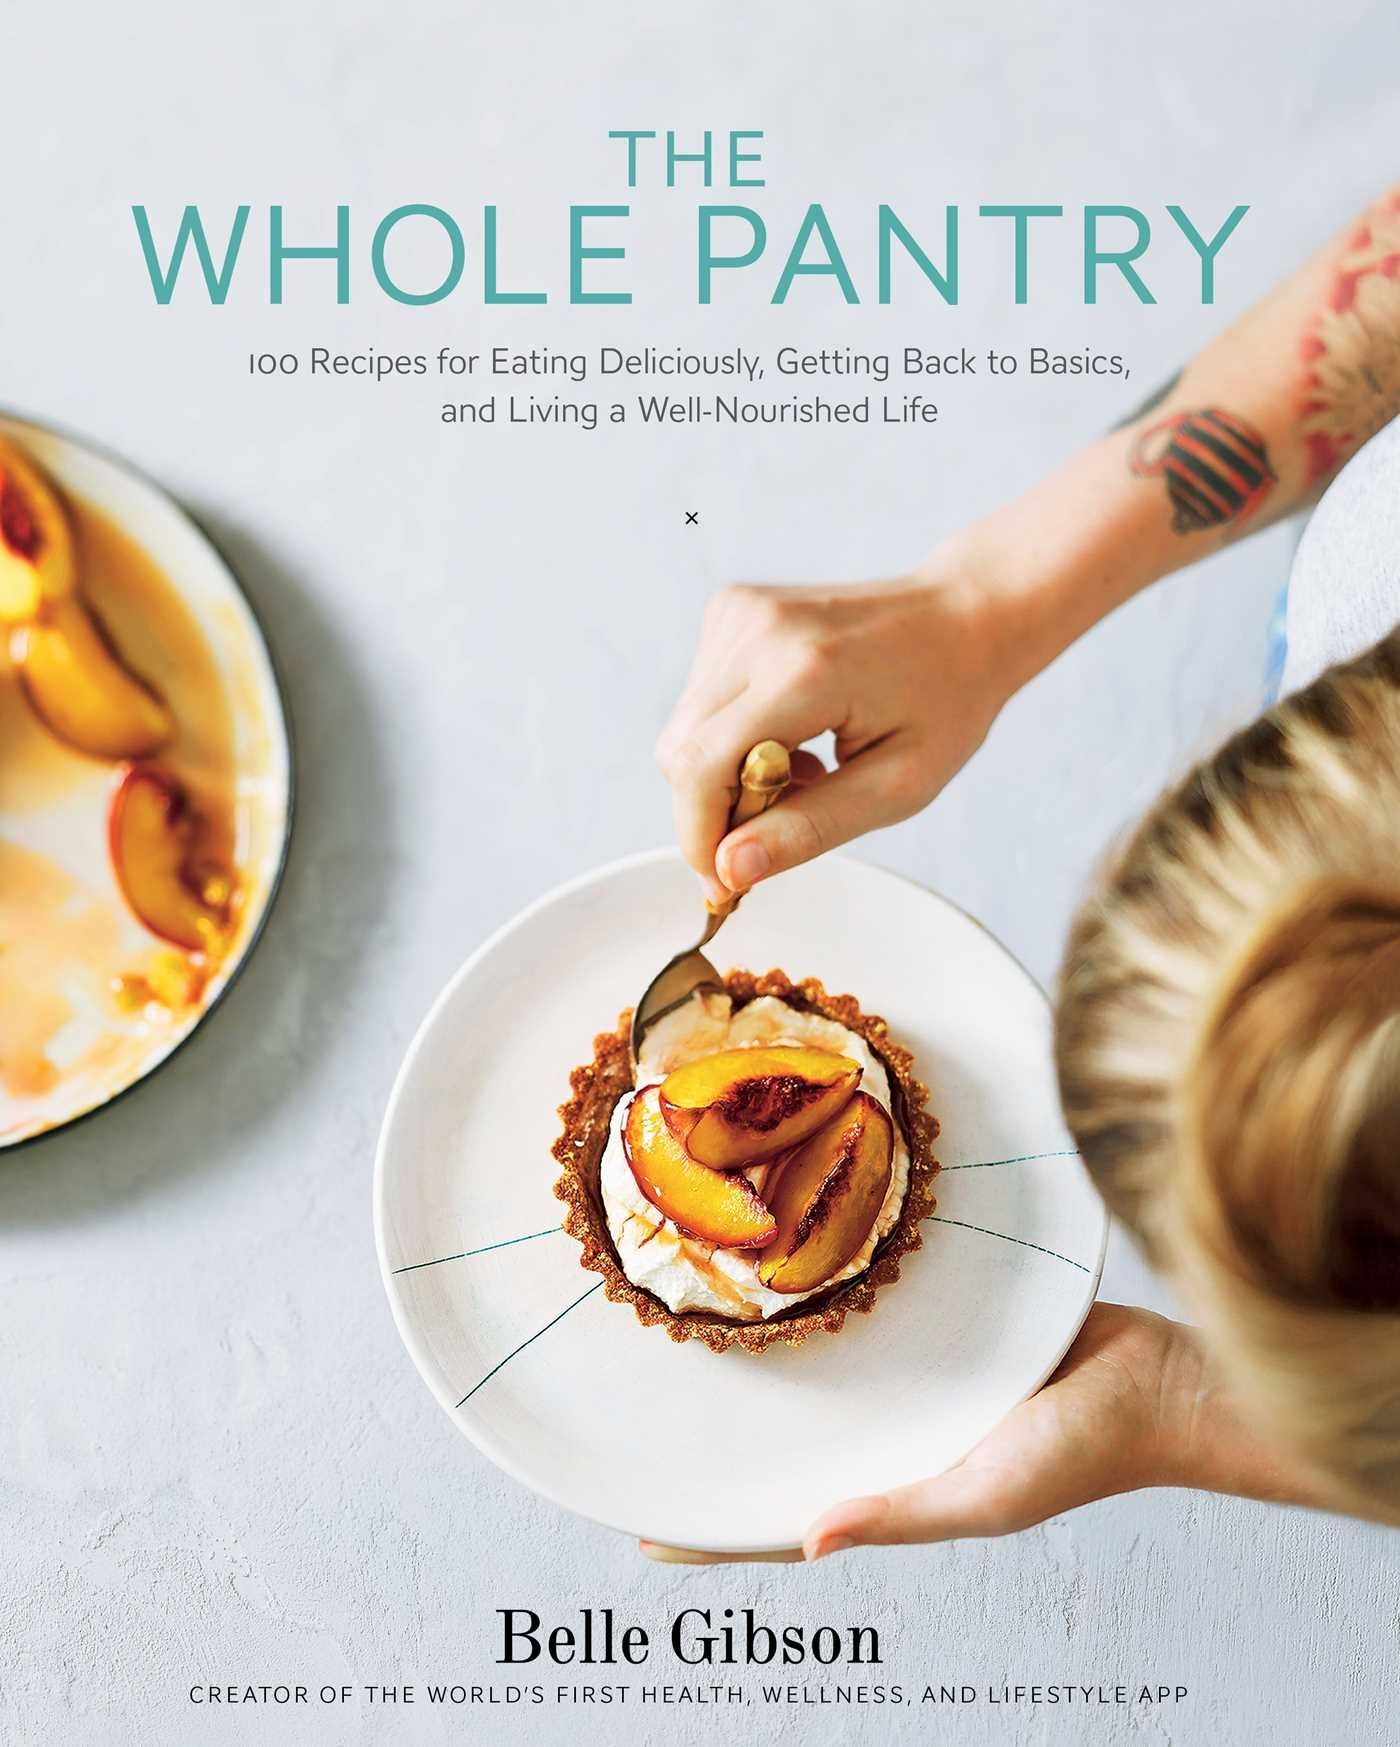 The Whole Pantry 100 Recipes for Eating Deliciously Getting Back